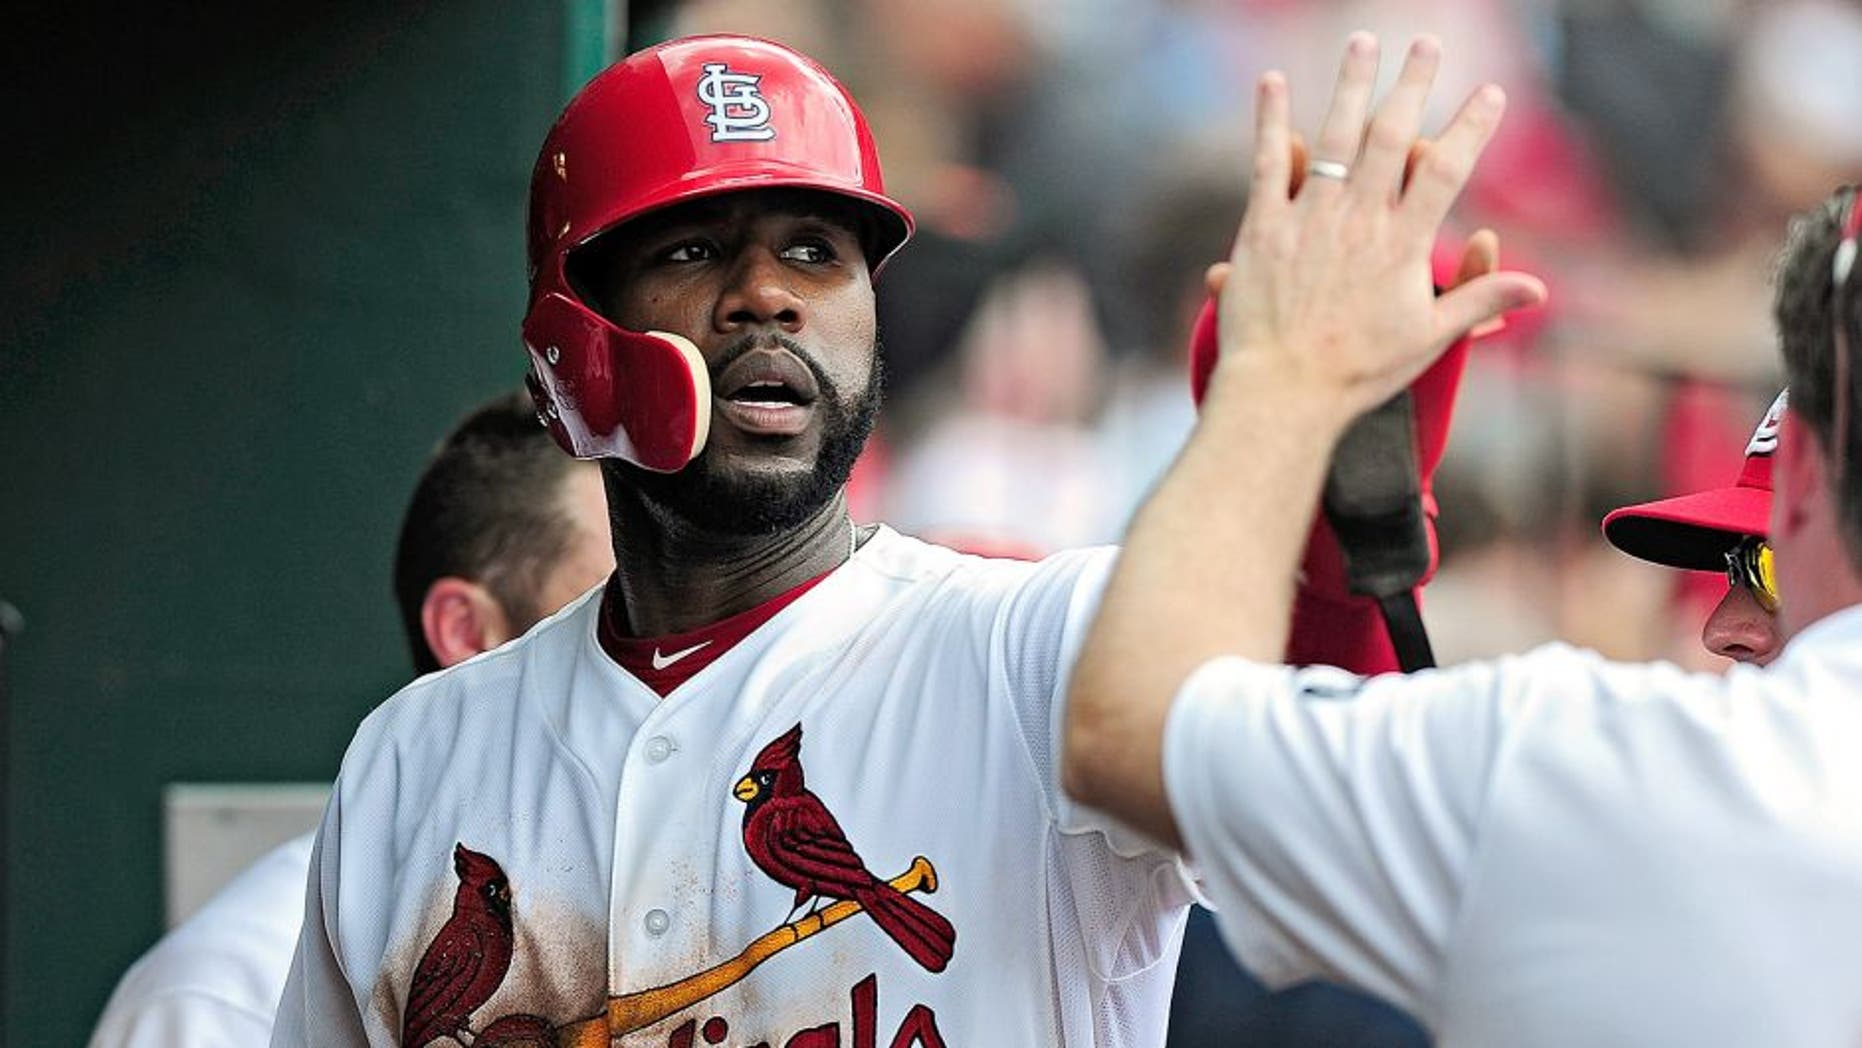 ST. LOUIS, MO - MAY 7: Jason Heyward #22 of the St. Louis Cardinals is congratulated by teammates after scoring against the Chicago Cubs during the sixth inning at Busch Stadium on May 7, 2015 in St. Louis, Missouri. (Photo by Jeff Curry/Getty Images)